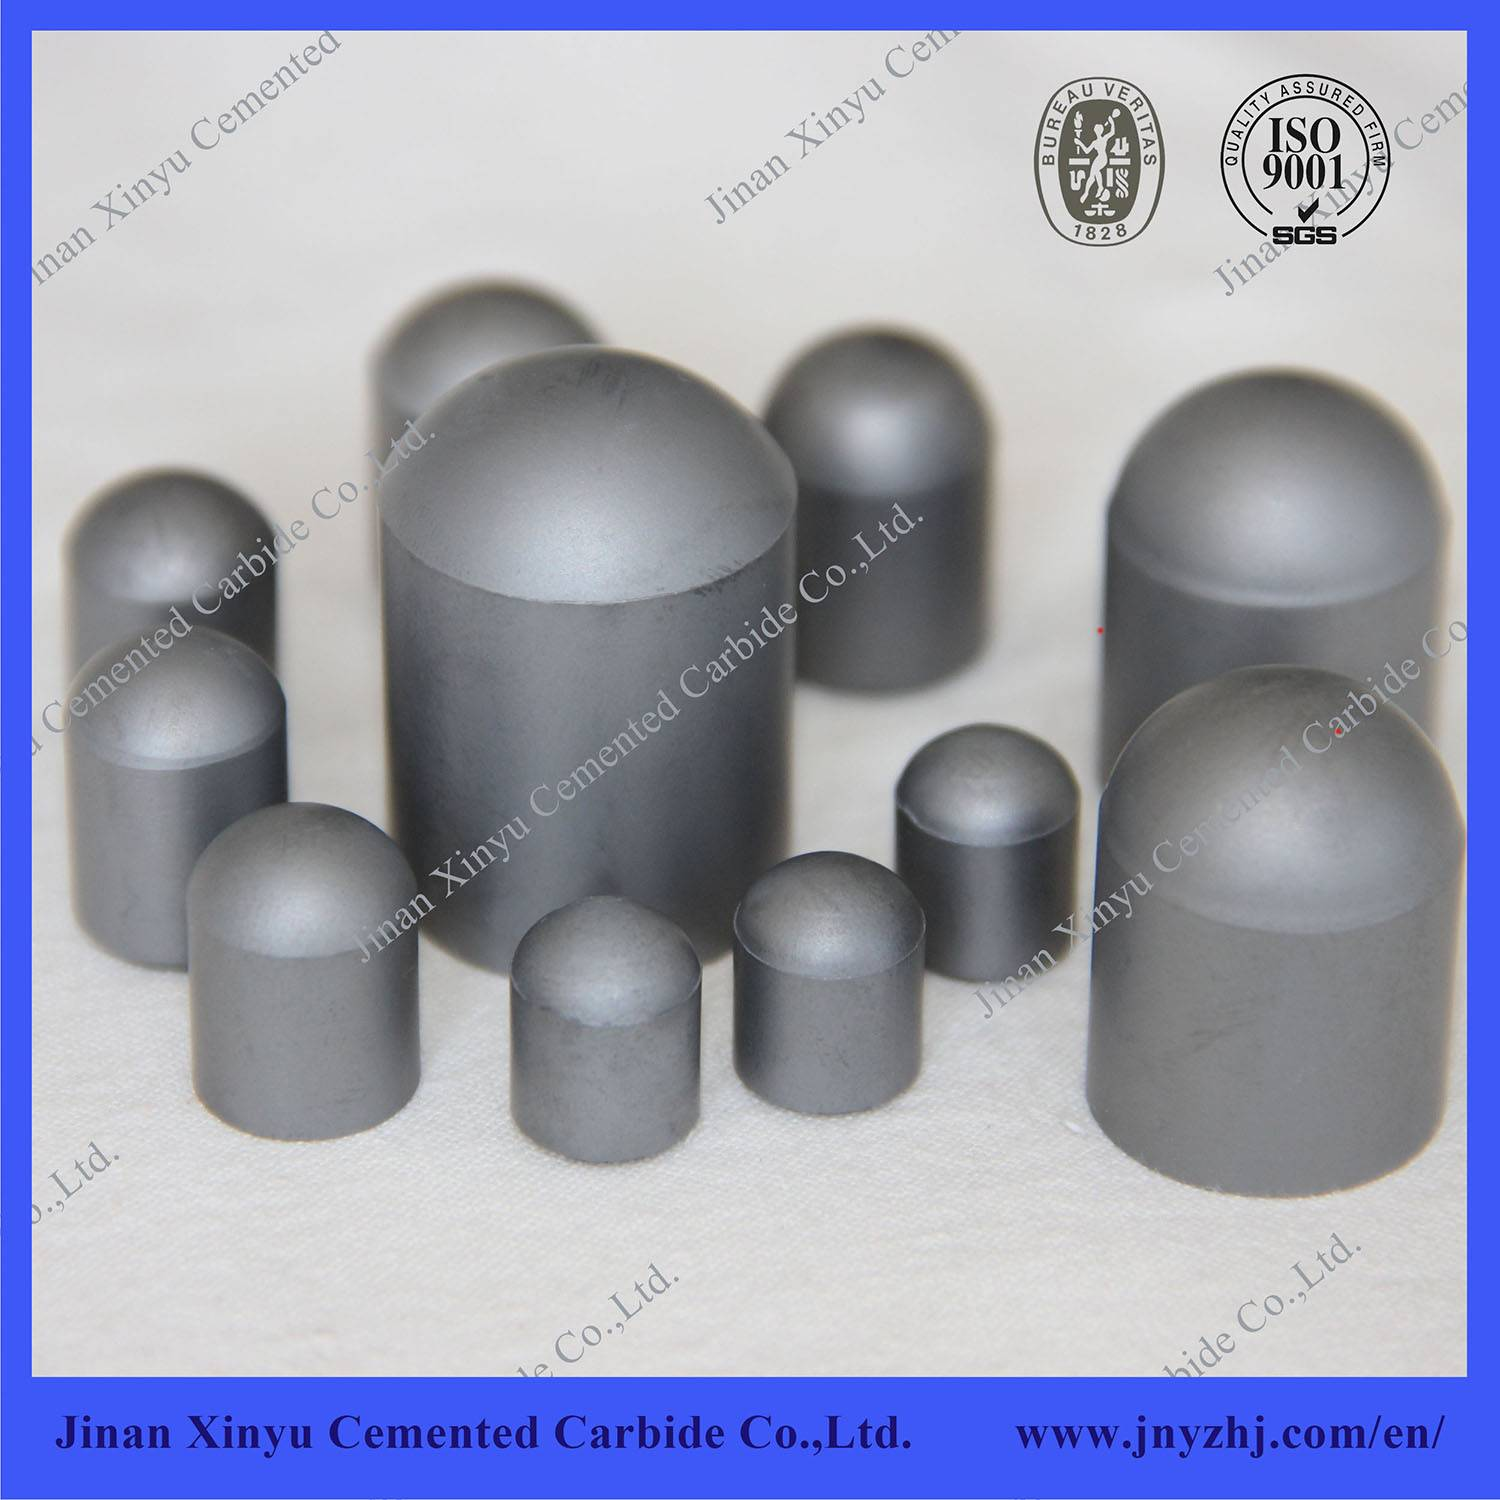 Cemented Carbide Shperical Buttons